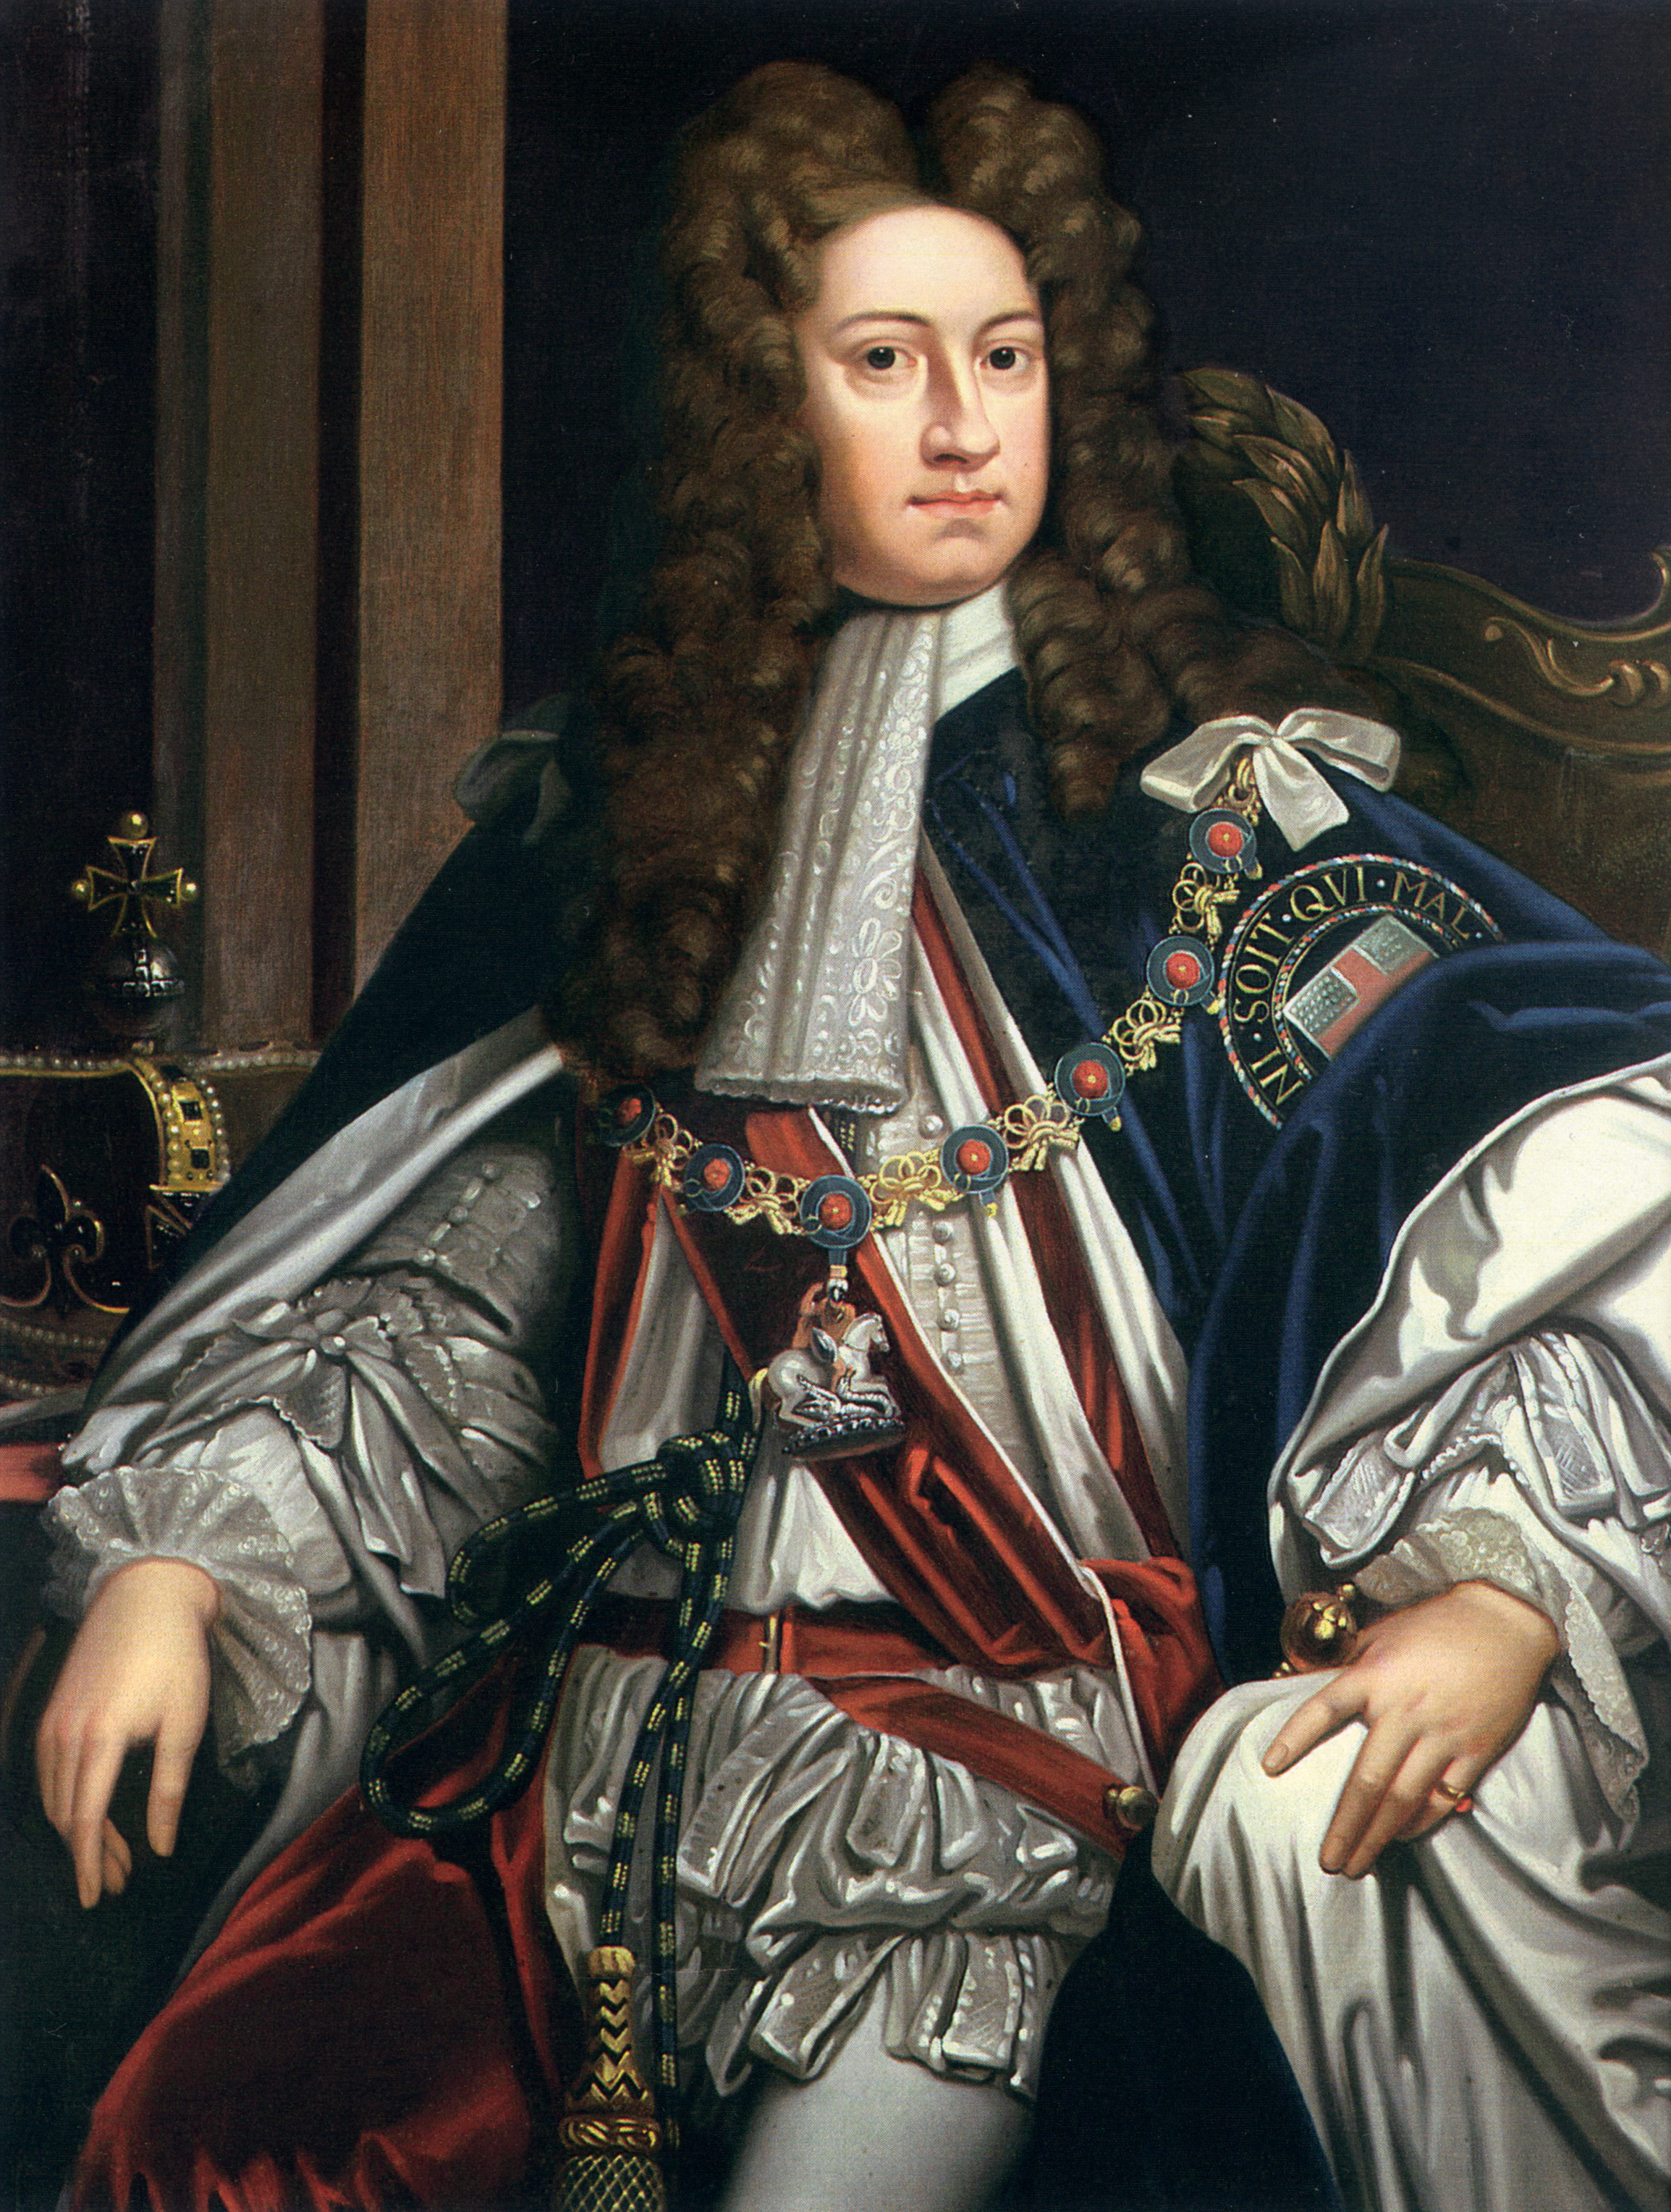 A painting of King George I of England./Ph. DR